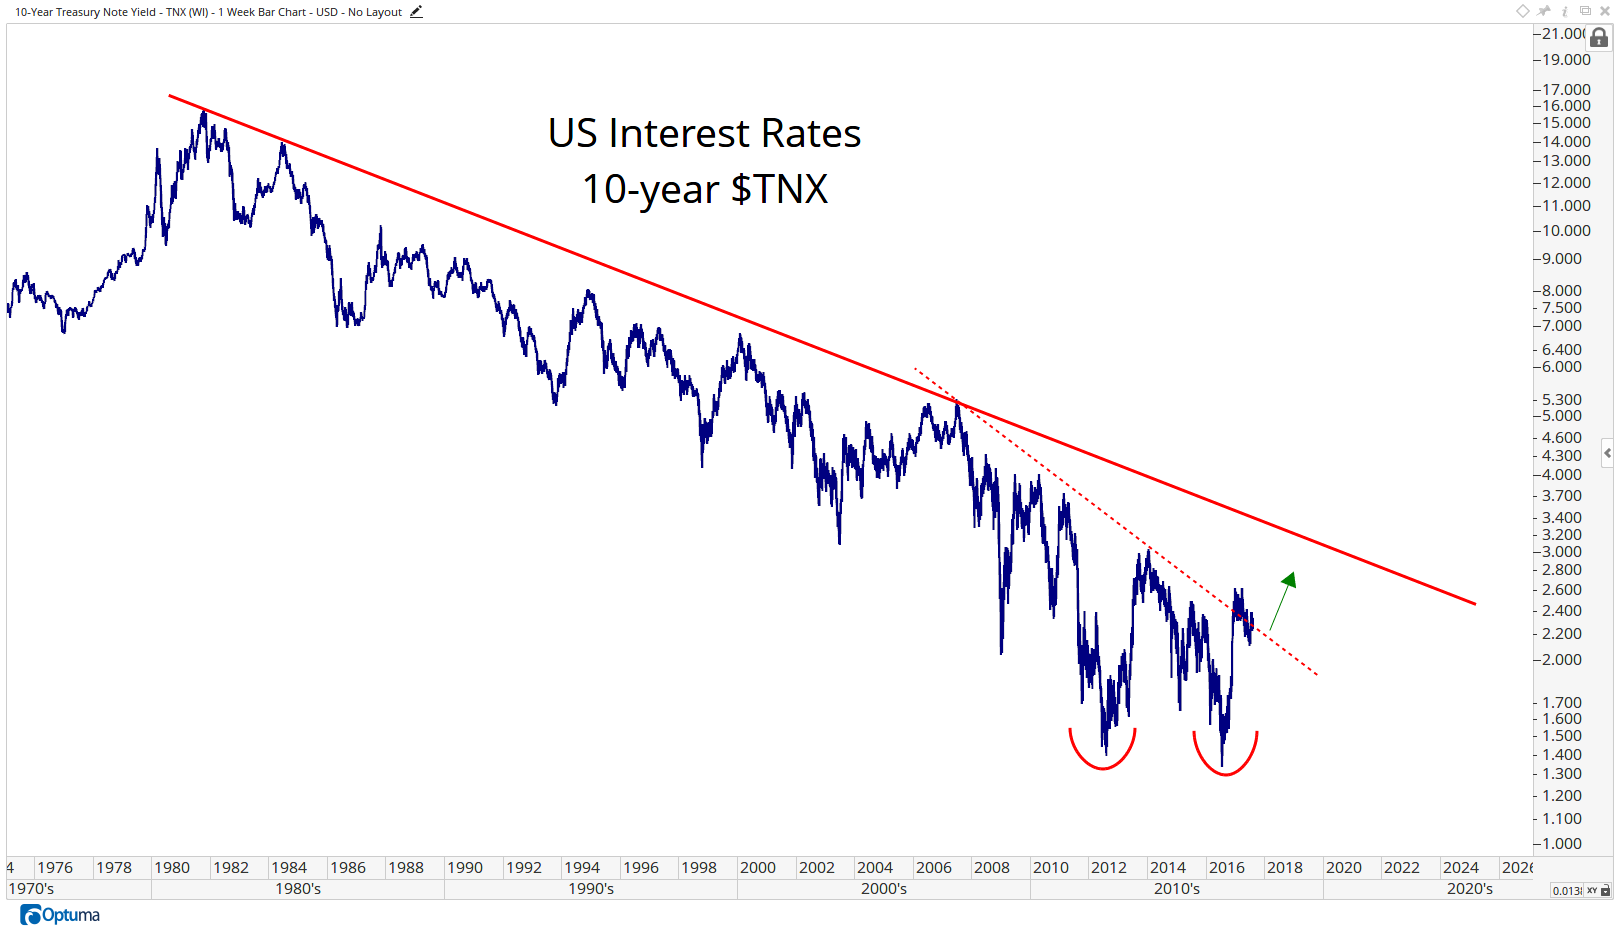 TNX - 10-Year Treasury Note Yield8